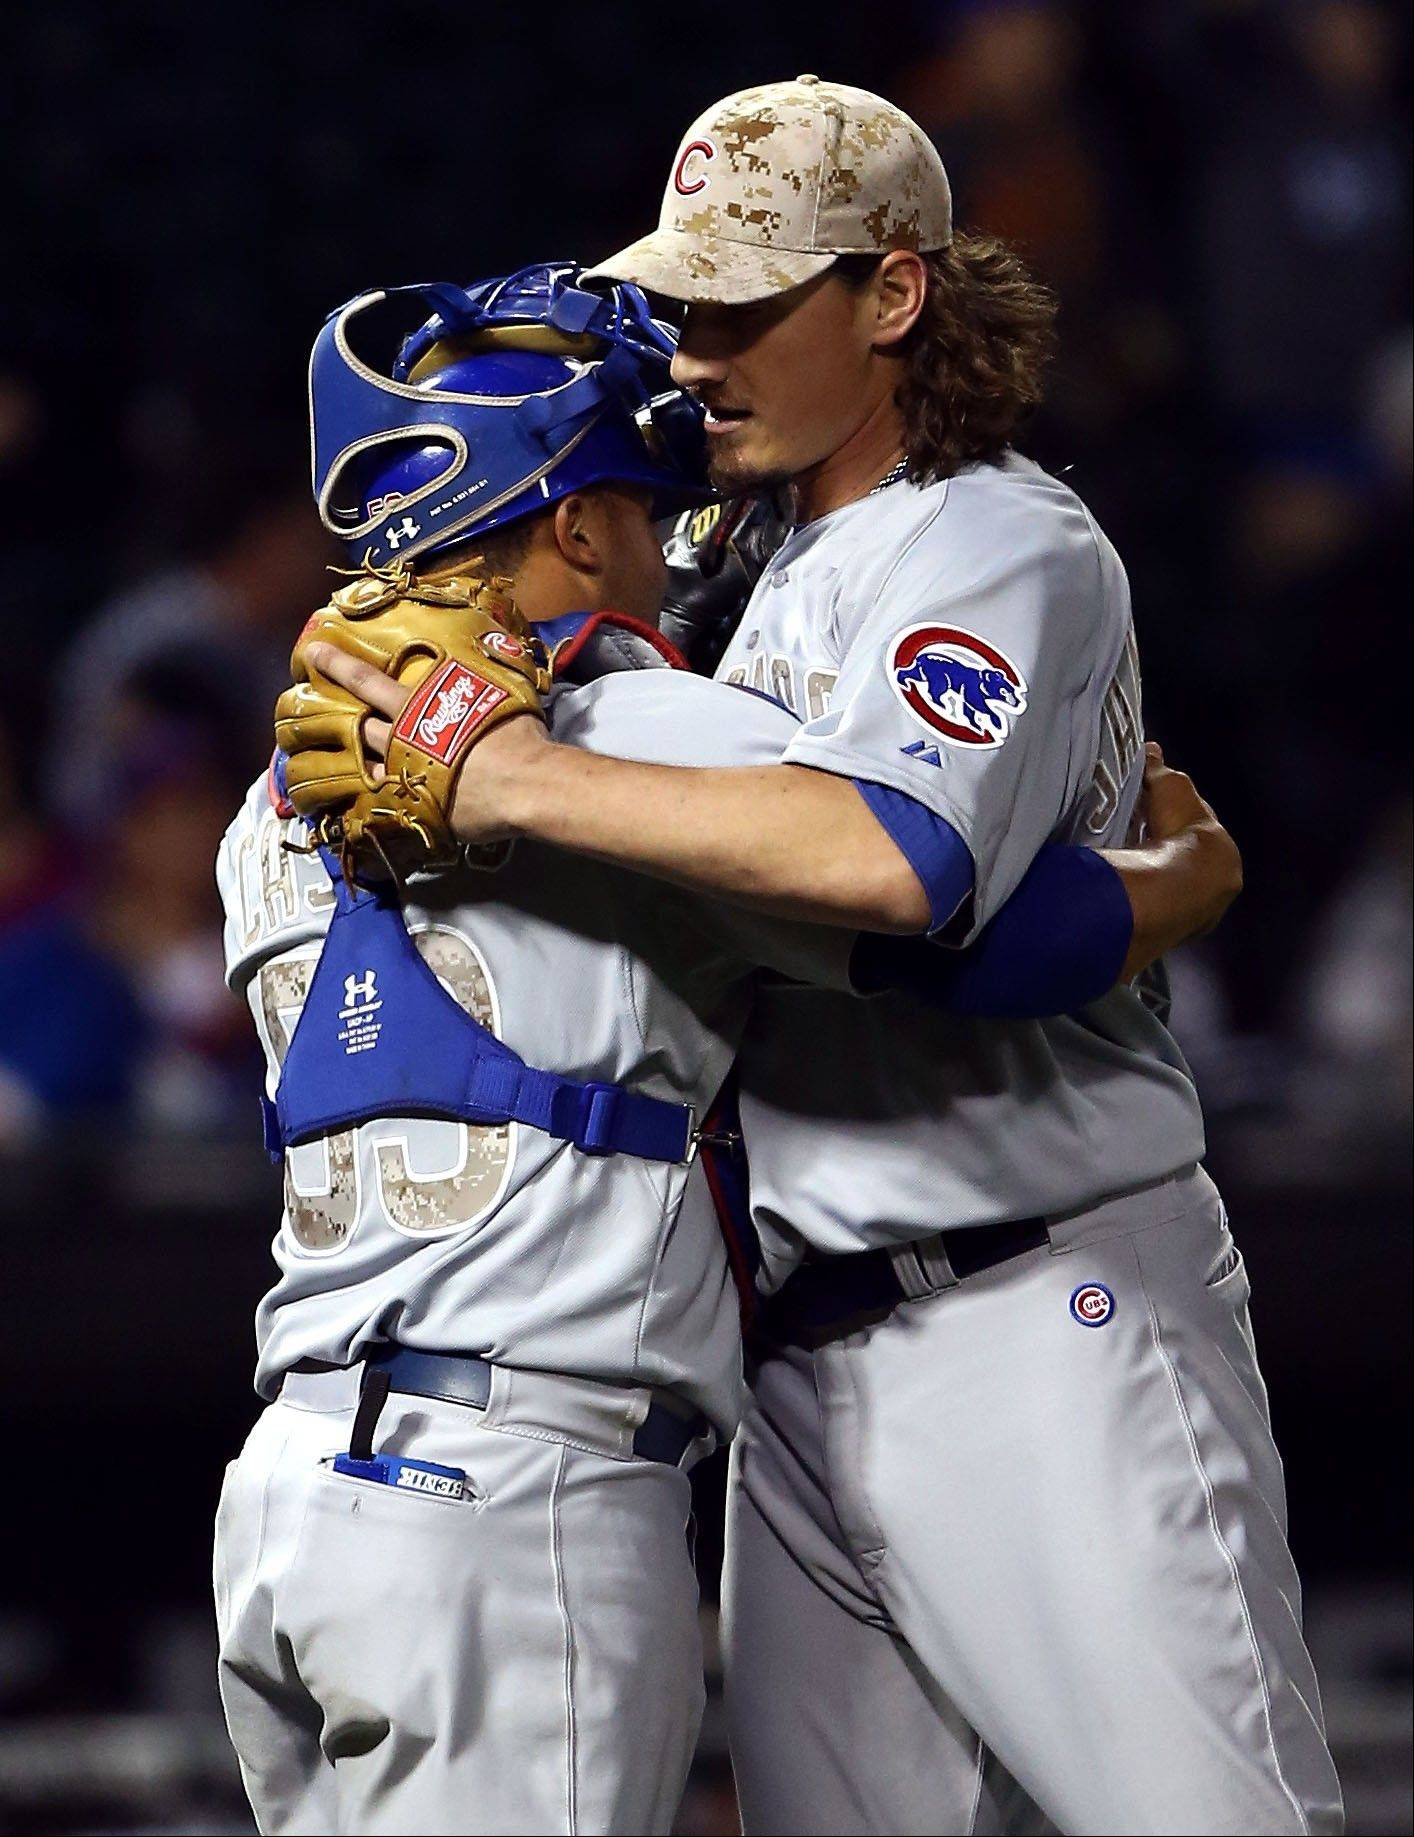 Cubs pitcher Jeff Samardzija hugs catcher Welington Castillo after pitching a complete-game 2-hitter as the Cubs beat the White Sox 7-0 Monday night at U.S. Cellular Field.